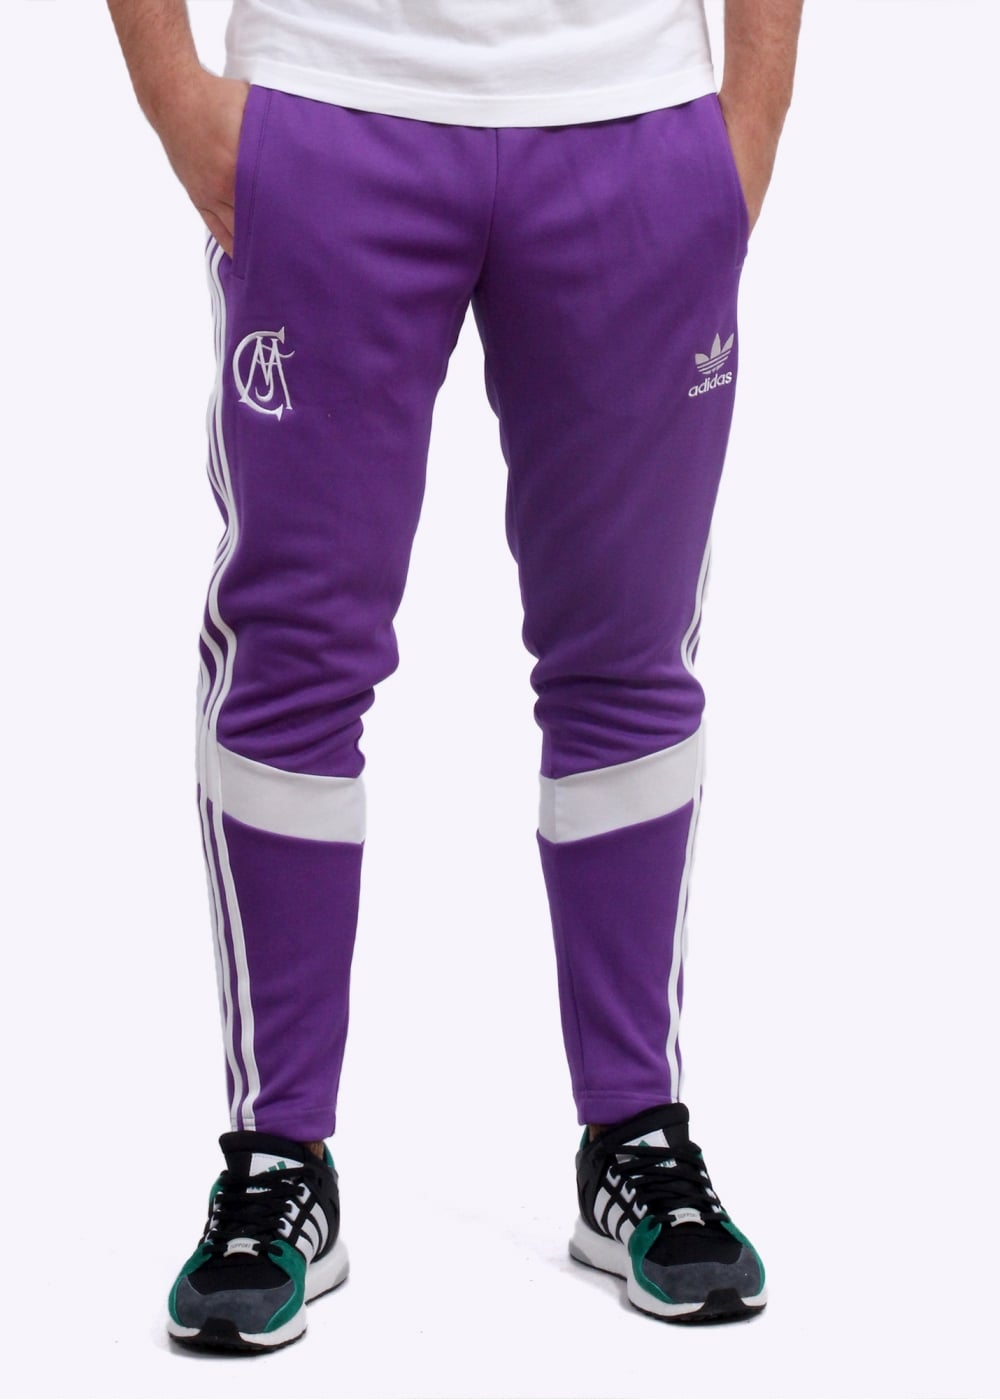 7dcf2eeba3c0 adidas Originals Apparel Real Madrid Track Pants - Purple ...